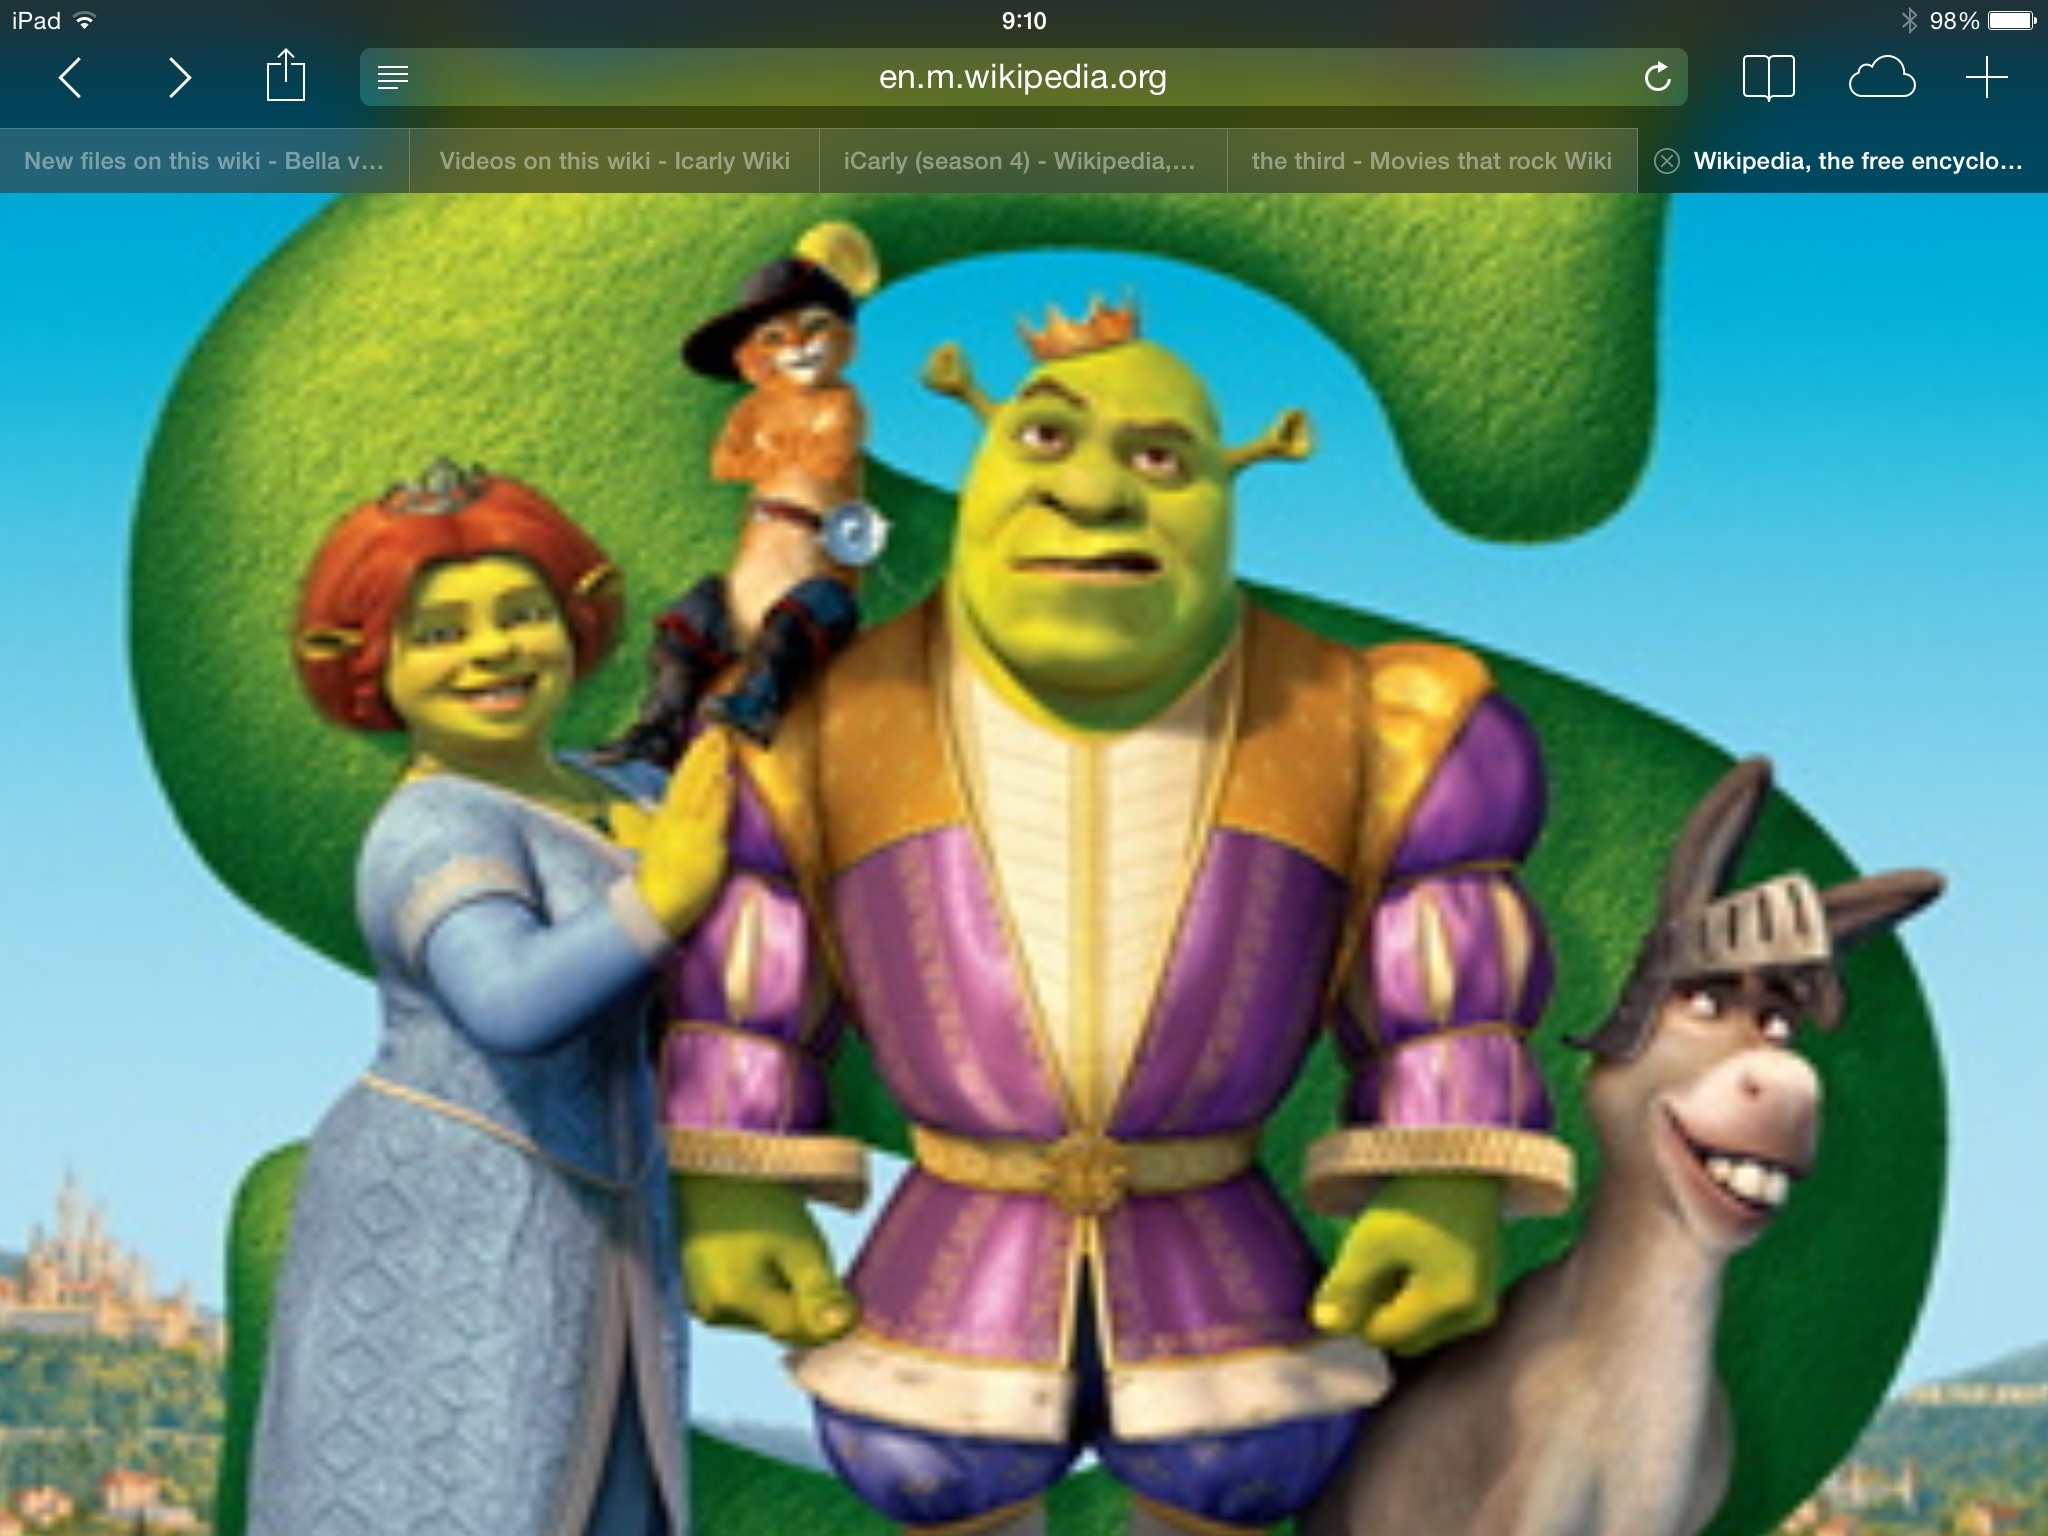 Shrek The Third Movies That Rock Wiki Fandom